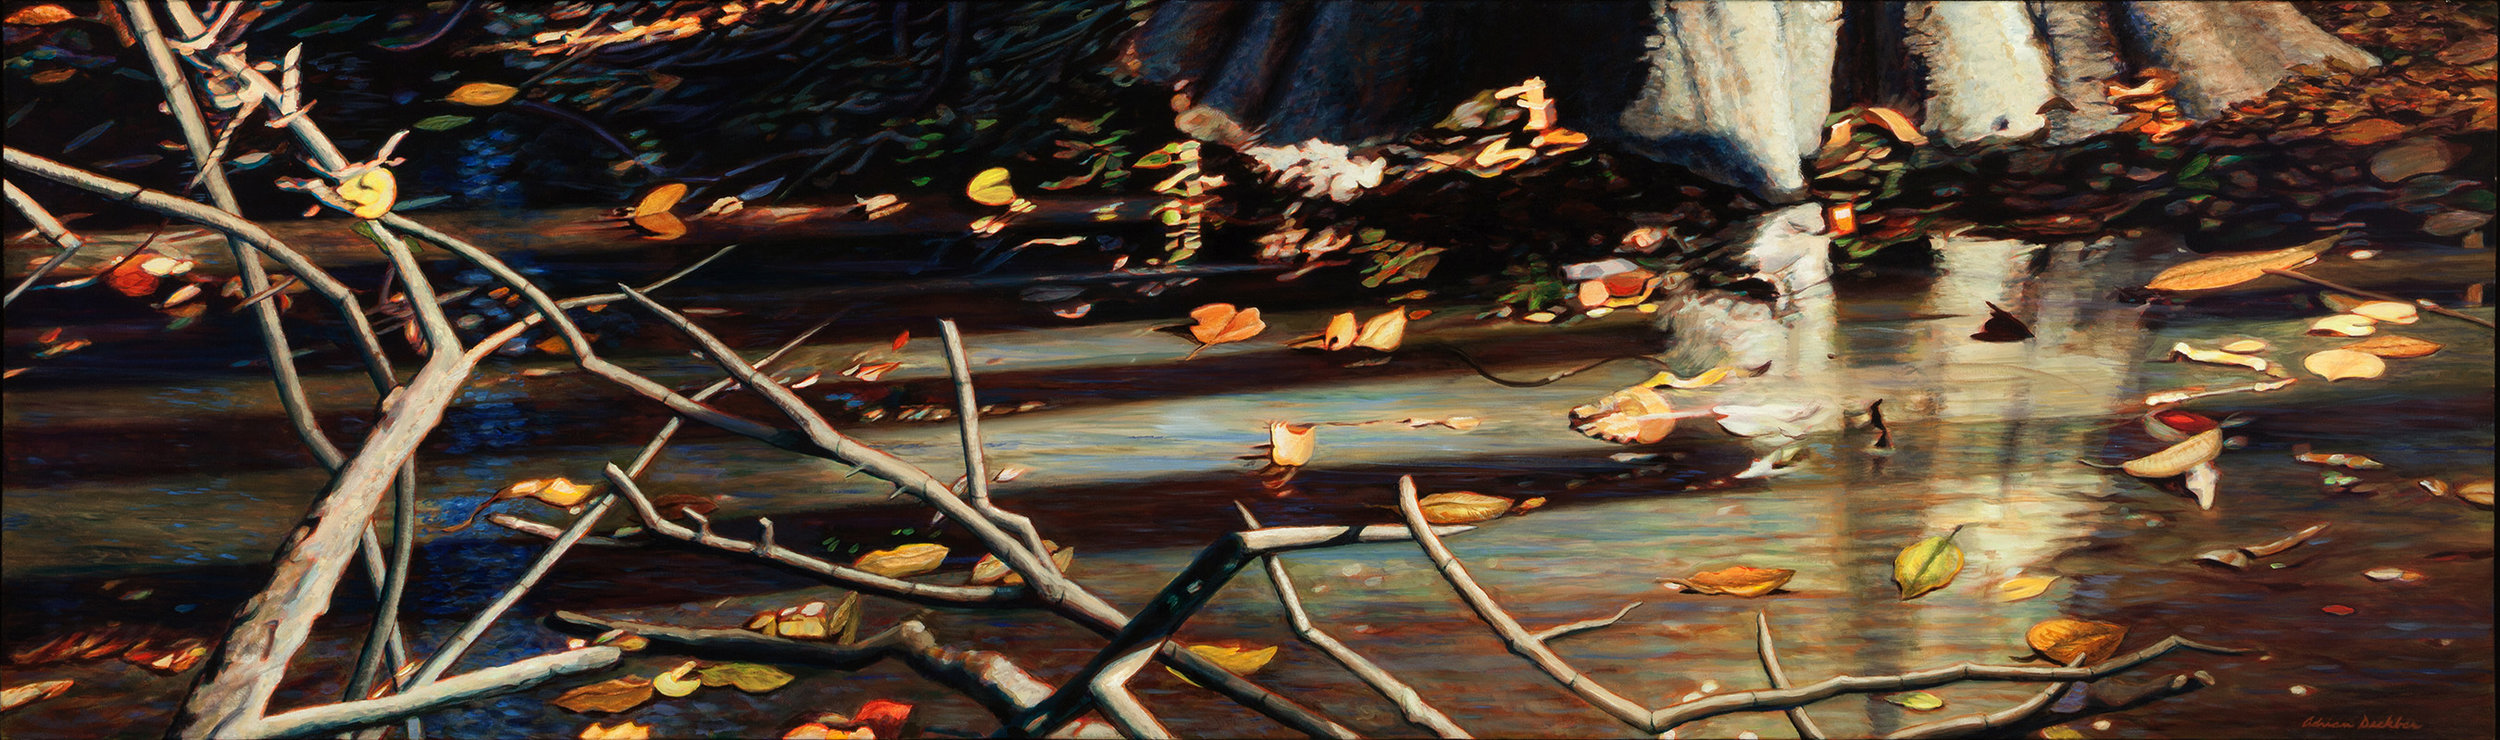 "Transition , acrylic, 24"" x 86"", 2013"